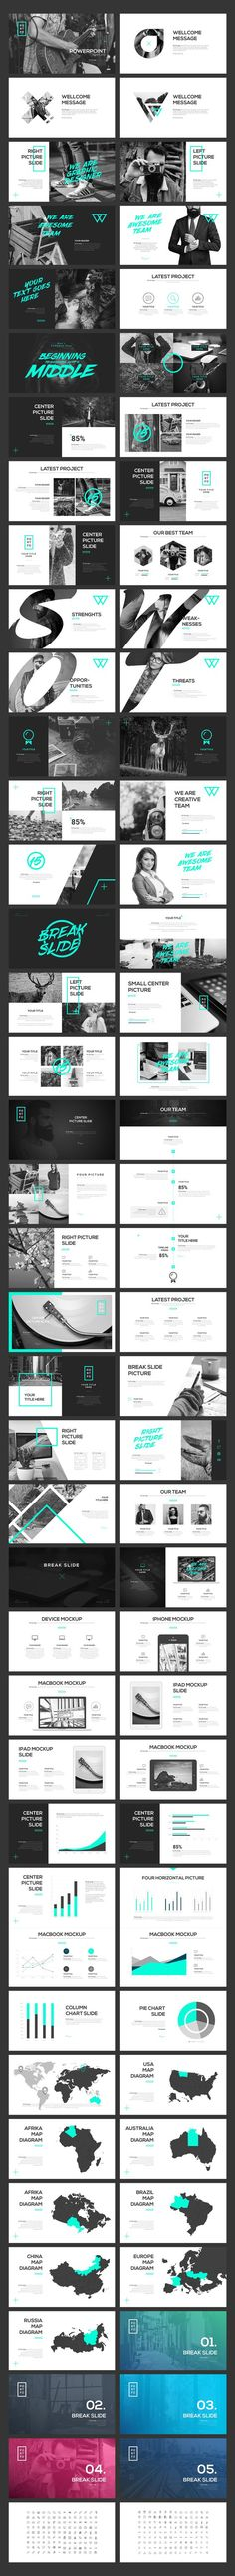 PORTFO Keynote Template by Angkalimabelas on @creativemarket: https://twitter.com/ClauTripon